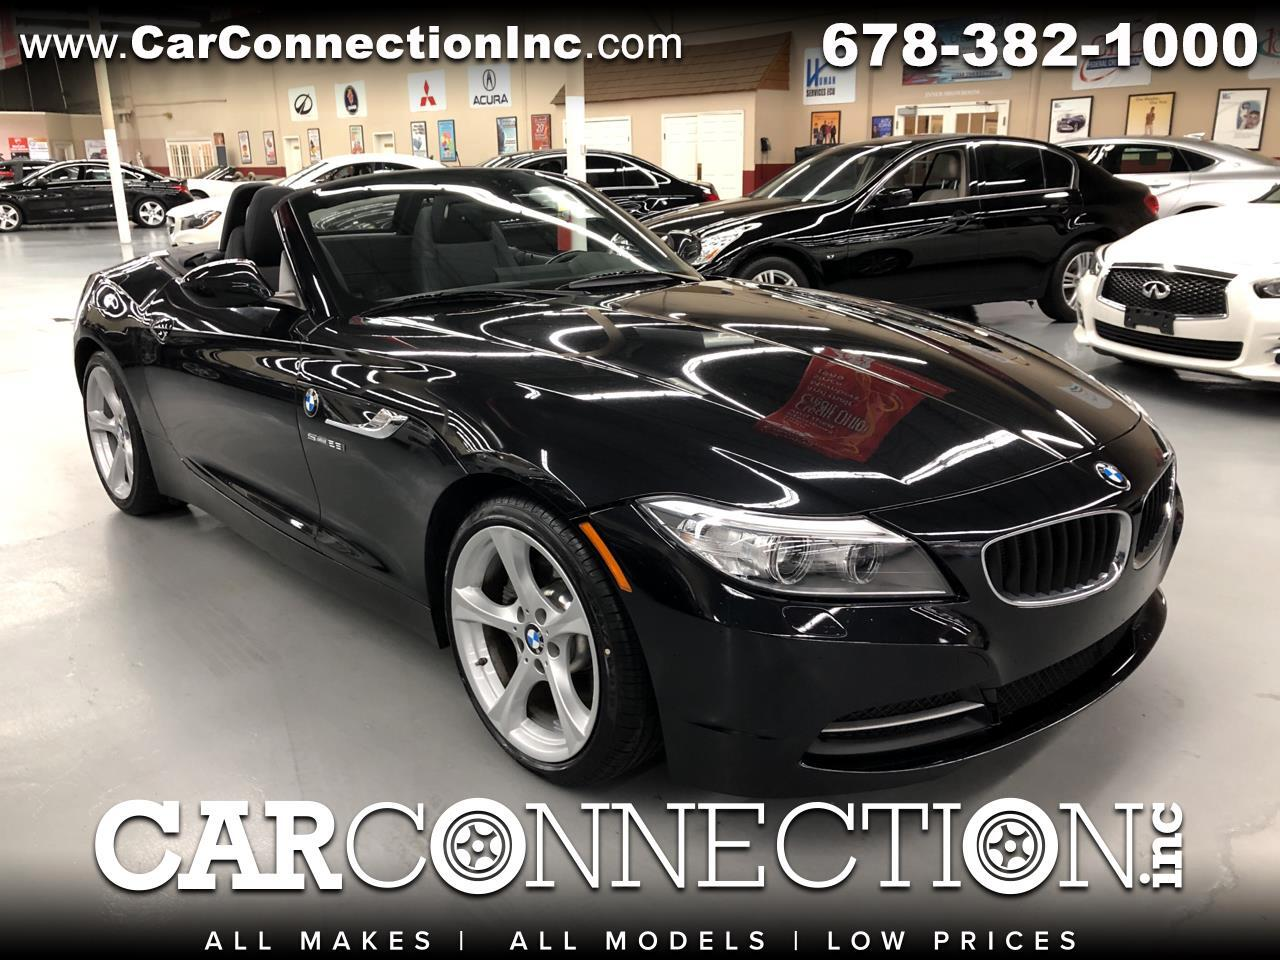 2015 BMW Z4 sDrive28i Roadster sport